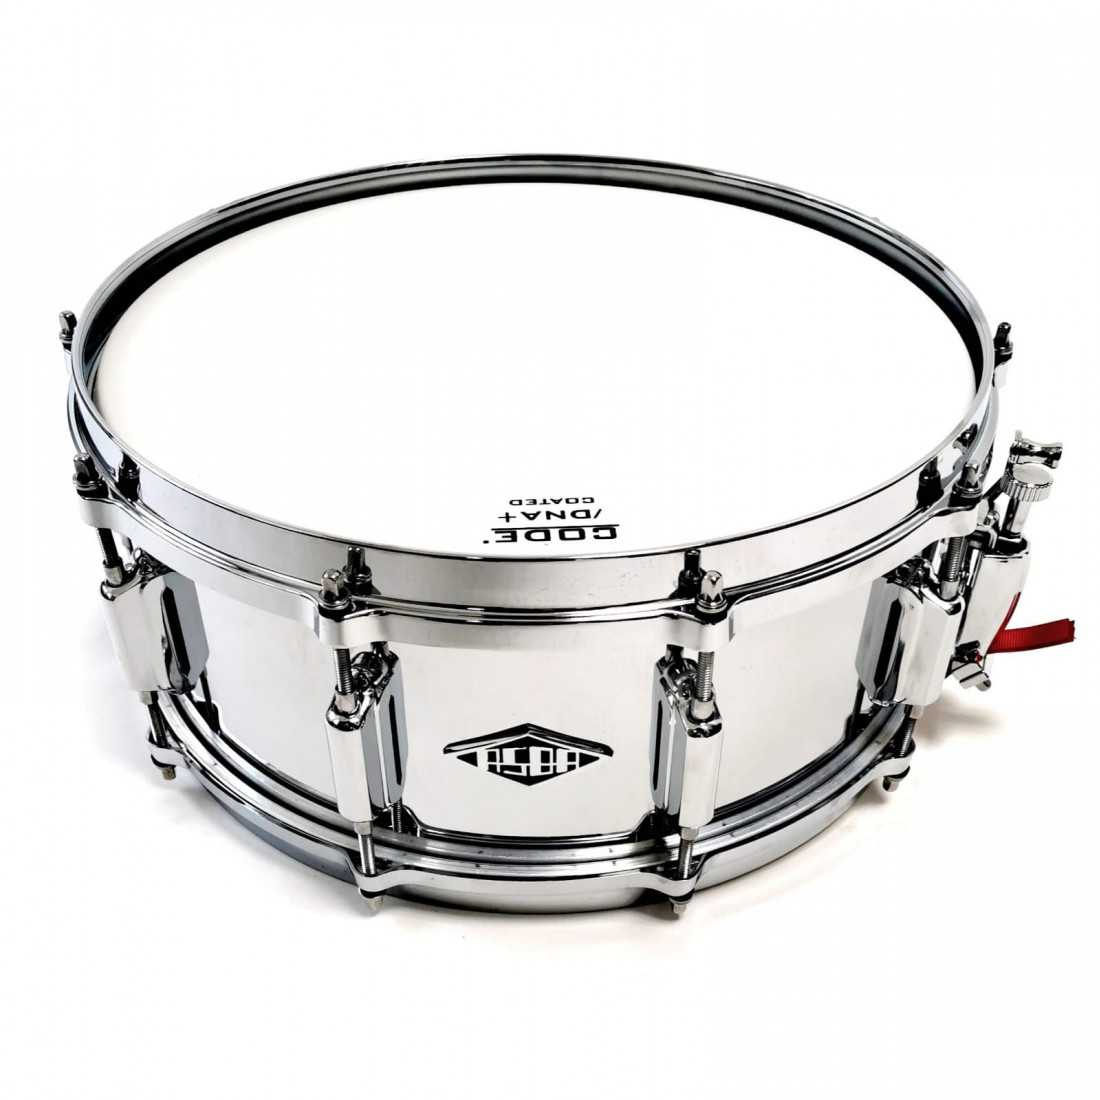 Snare Steel Loving You Strong front view + logo